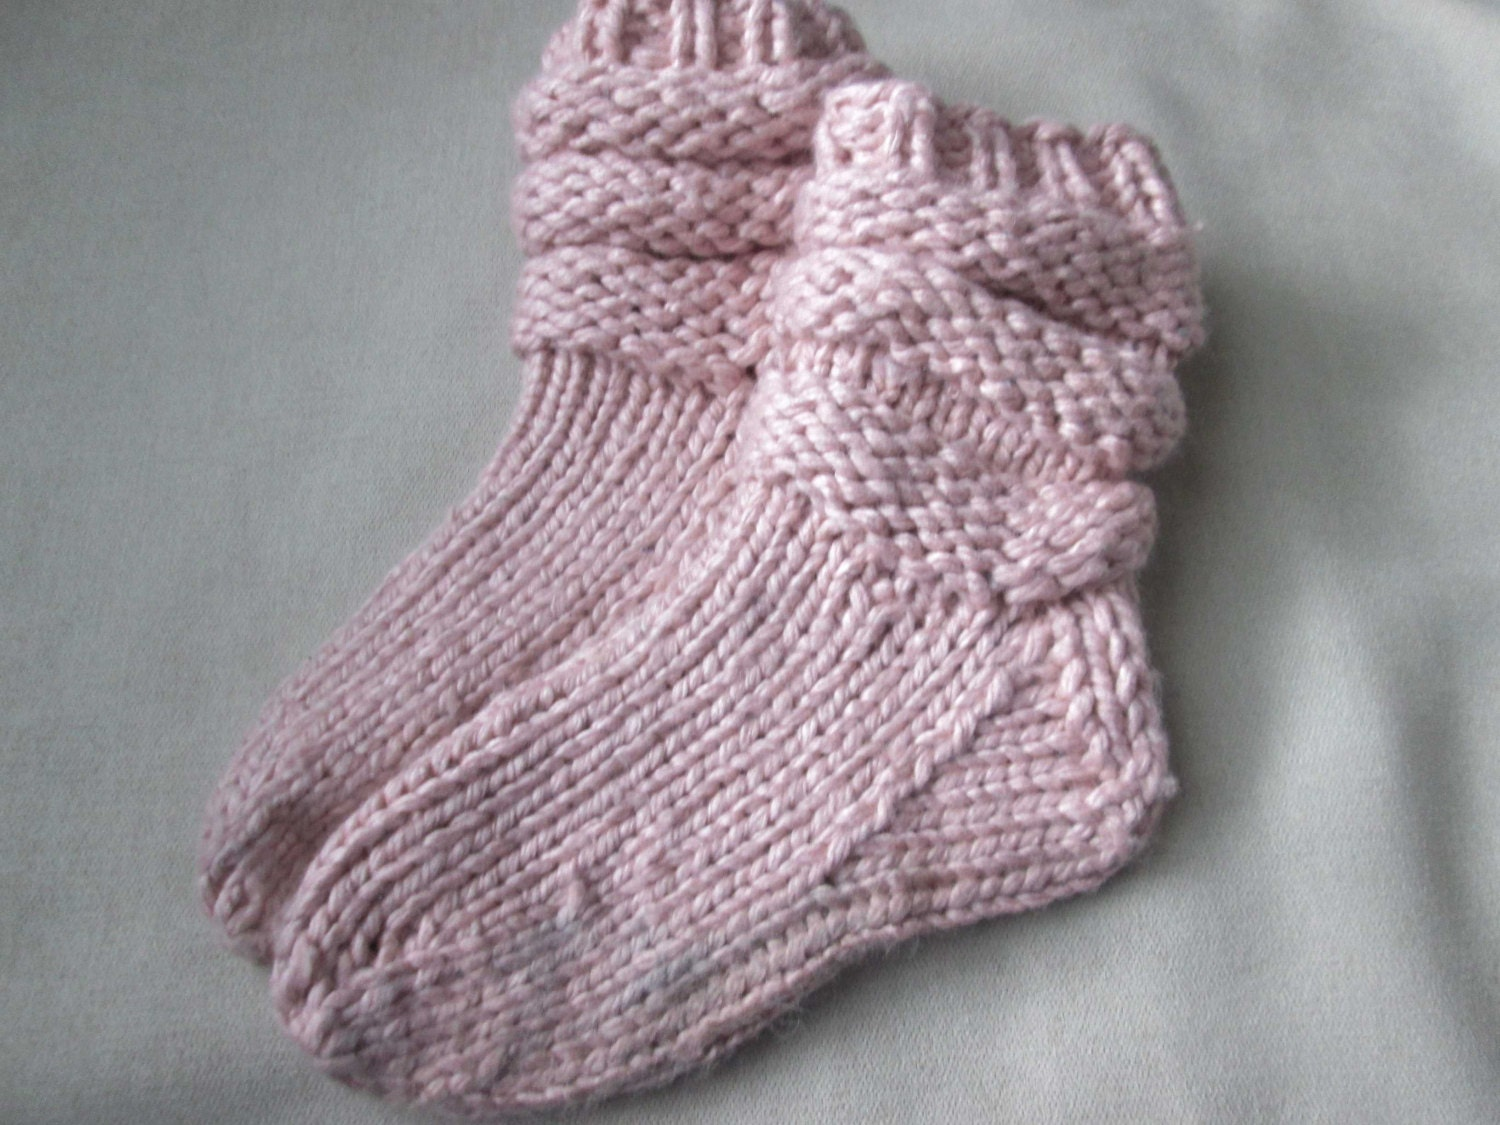 Slipper Socks Knitting Pattern - Pattern for Chunky Knit Slipper ...